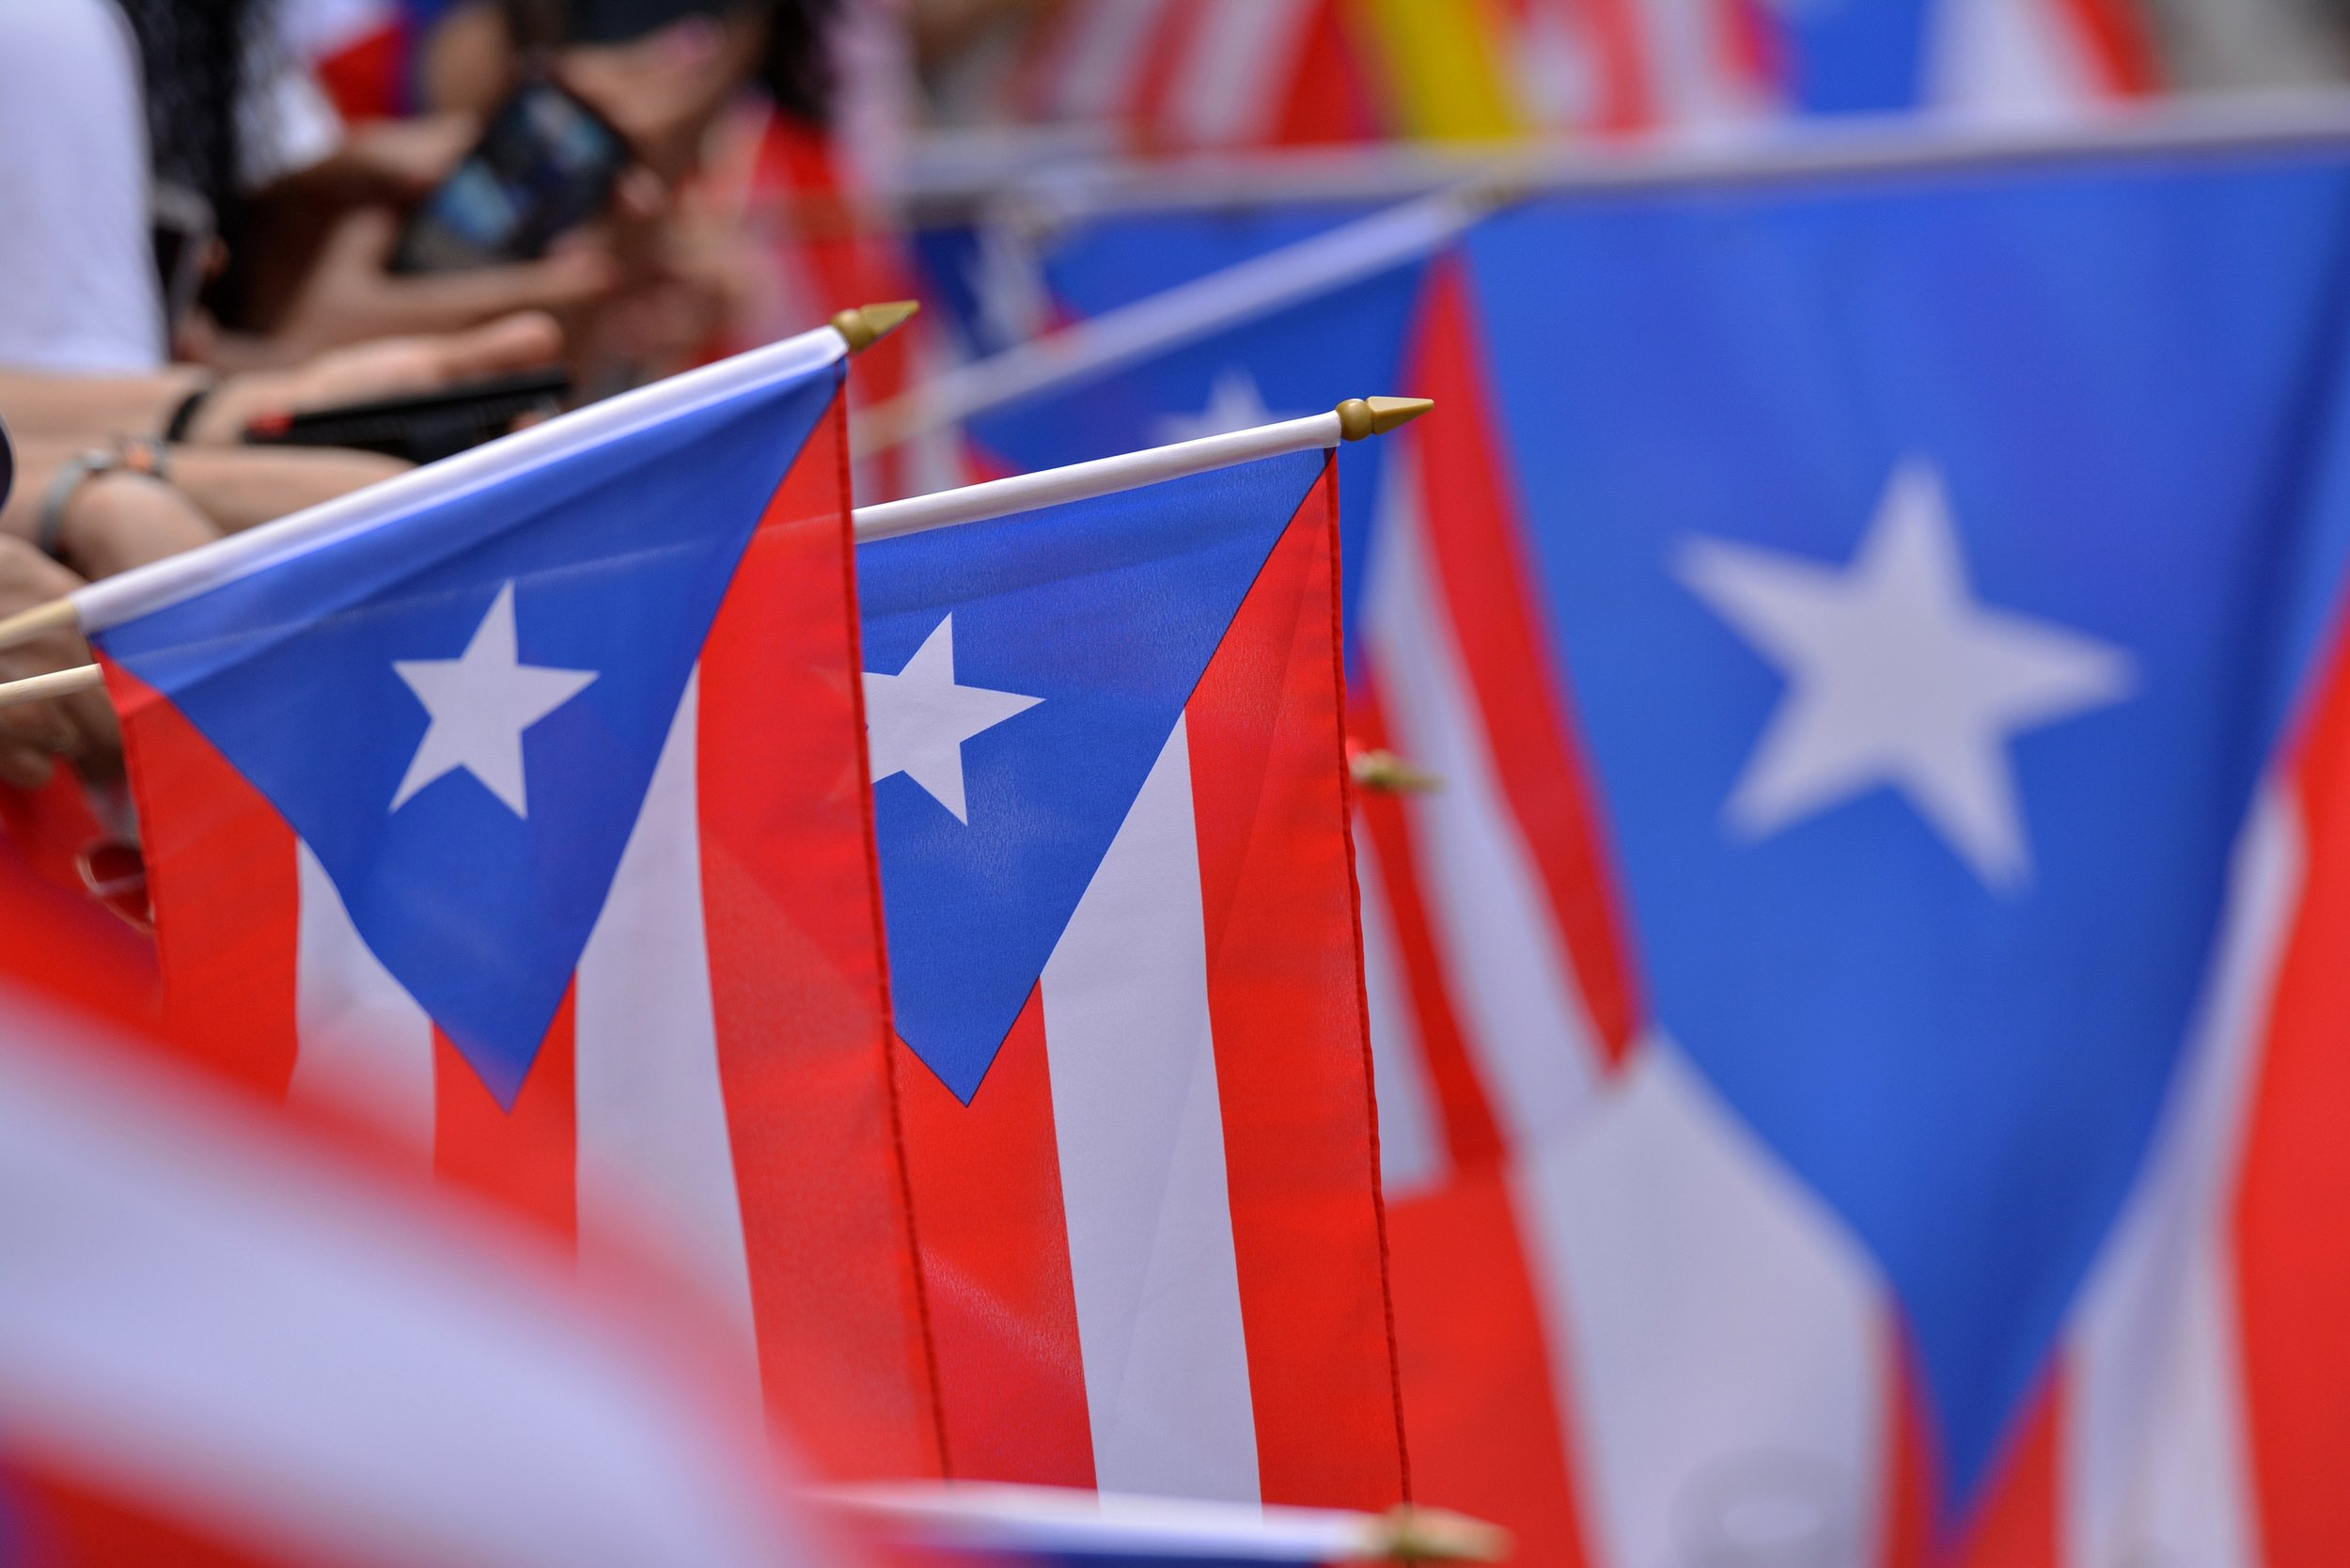 Pictured: Puerto Rican flags.